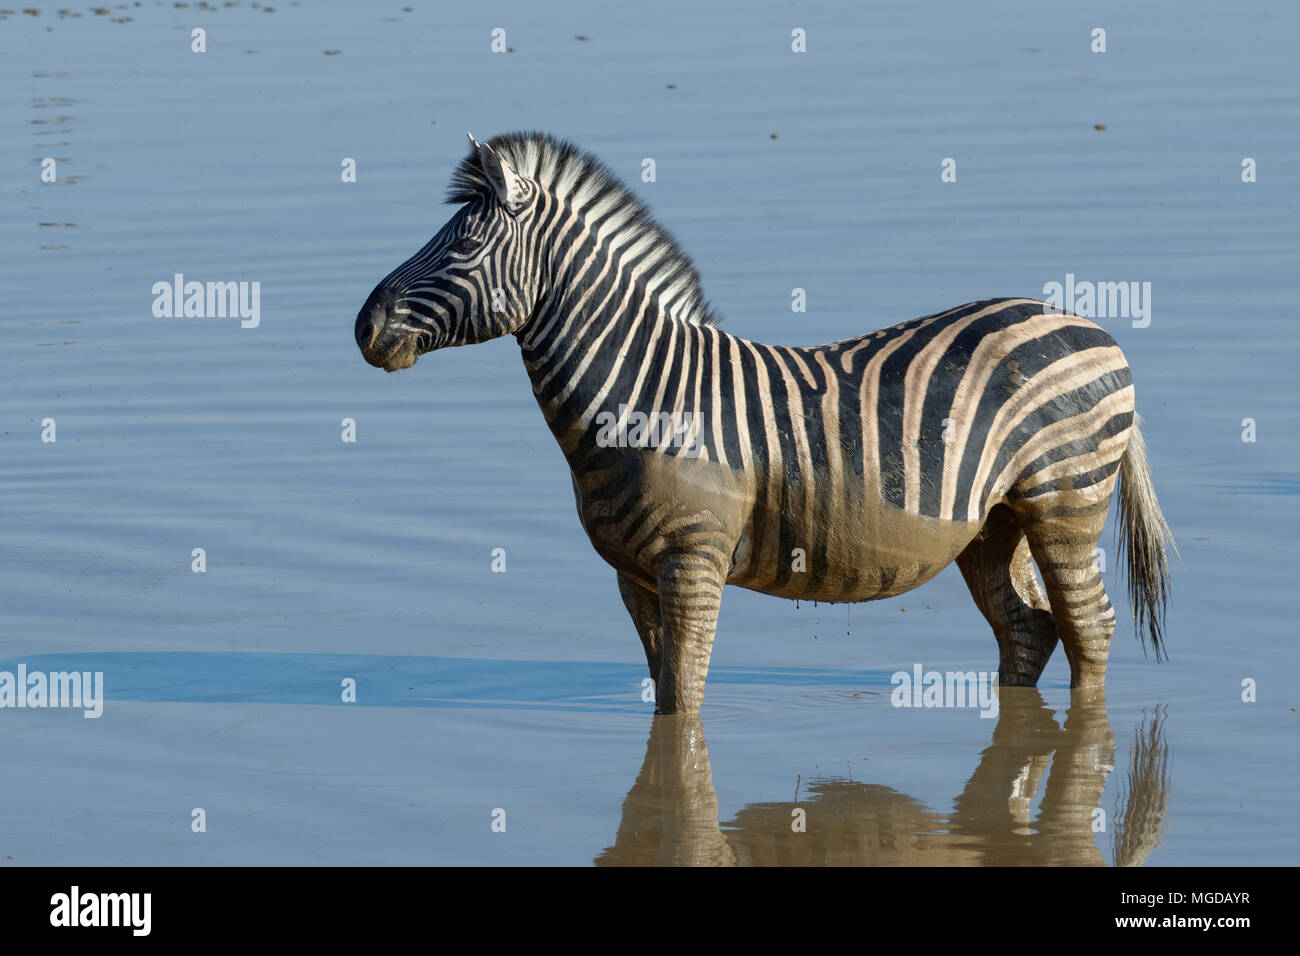 Le zèbre de Burchell (Equus quagga burchellii) debout dans l'eau boueuse, point d'Okaukuejo, Etosha National Park, Namibie, Afrique Photo Stock